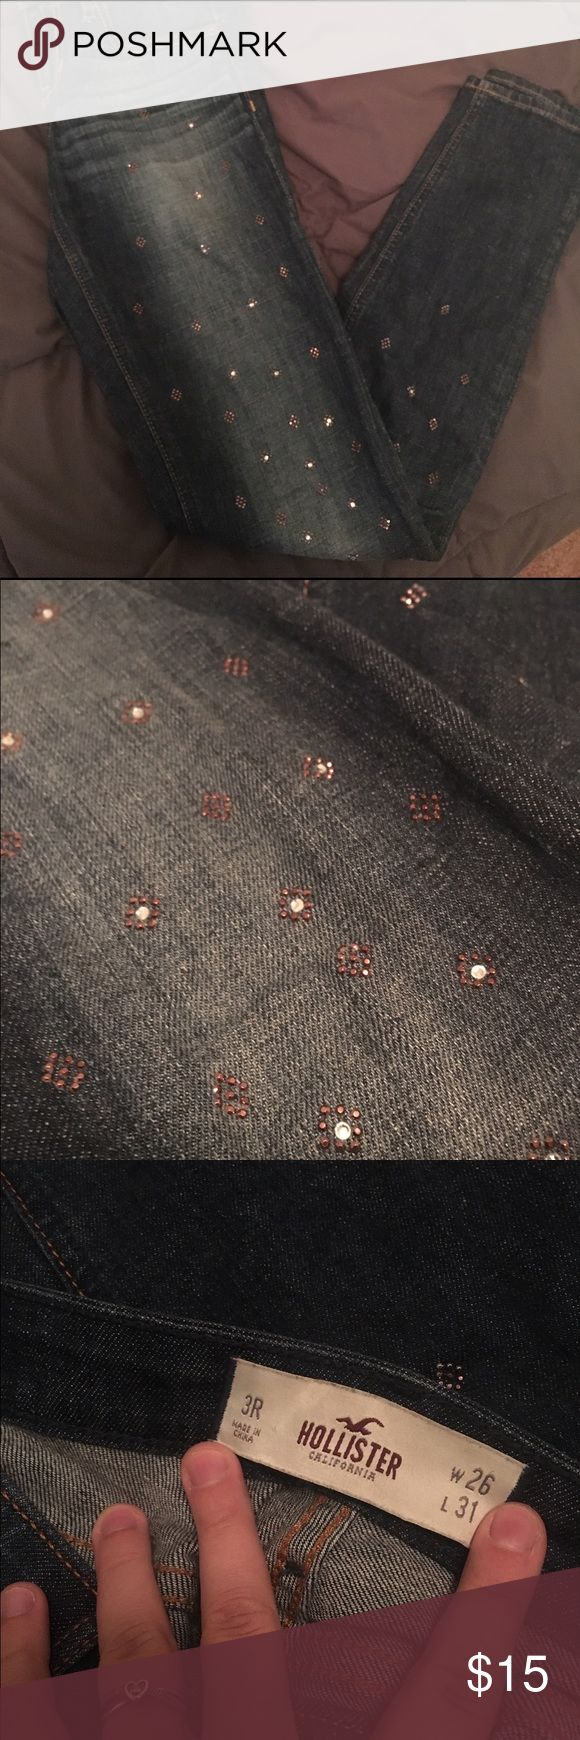 Hollister Embellished Jeggings Size 3R, has little rhinestone embellishments. None of the rhinestones are missing and the jeans have been washed so i think they will definitely stay on forever! Hollister Jeans Skinny